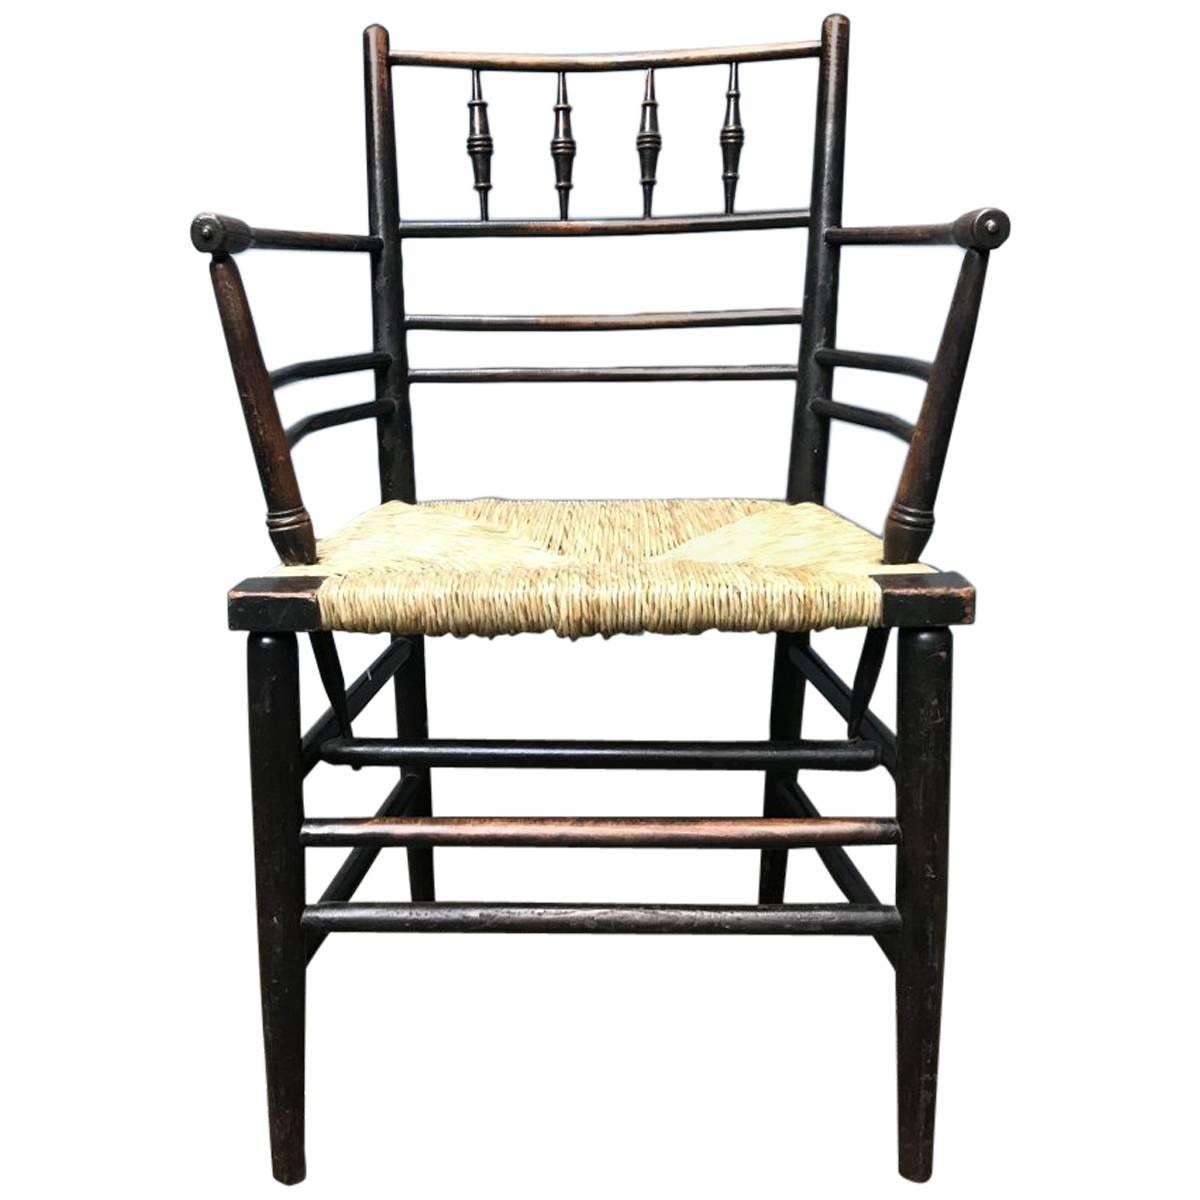 Antique Furniture Edwardian (1901-1910) Trend Mark Antique Long Oak Stool Low Bench William Morris Style Art And Crafts Covering